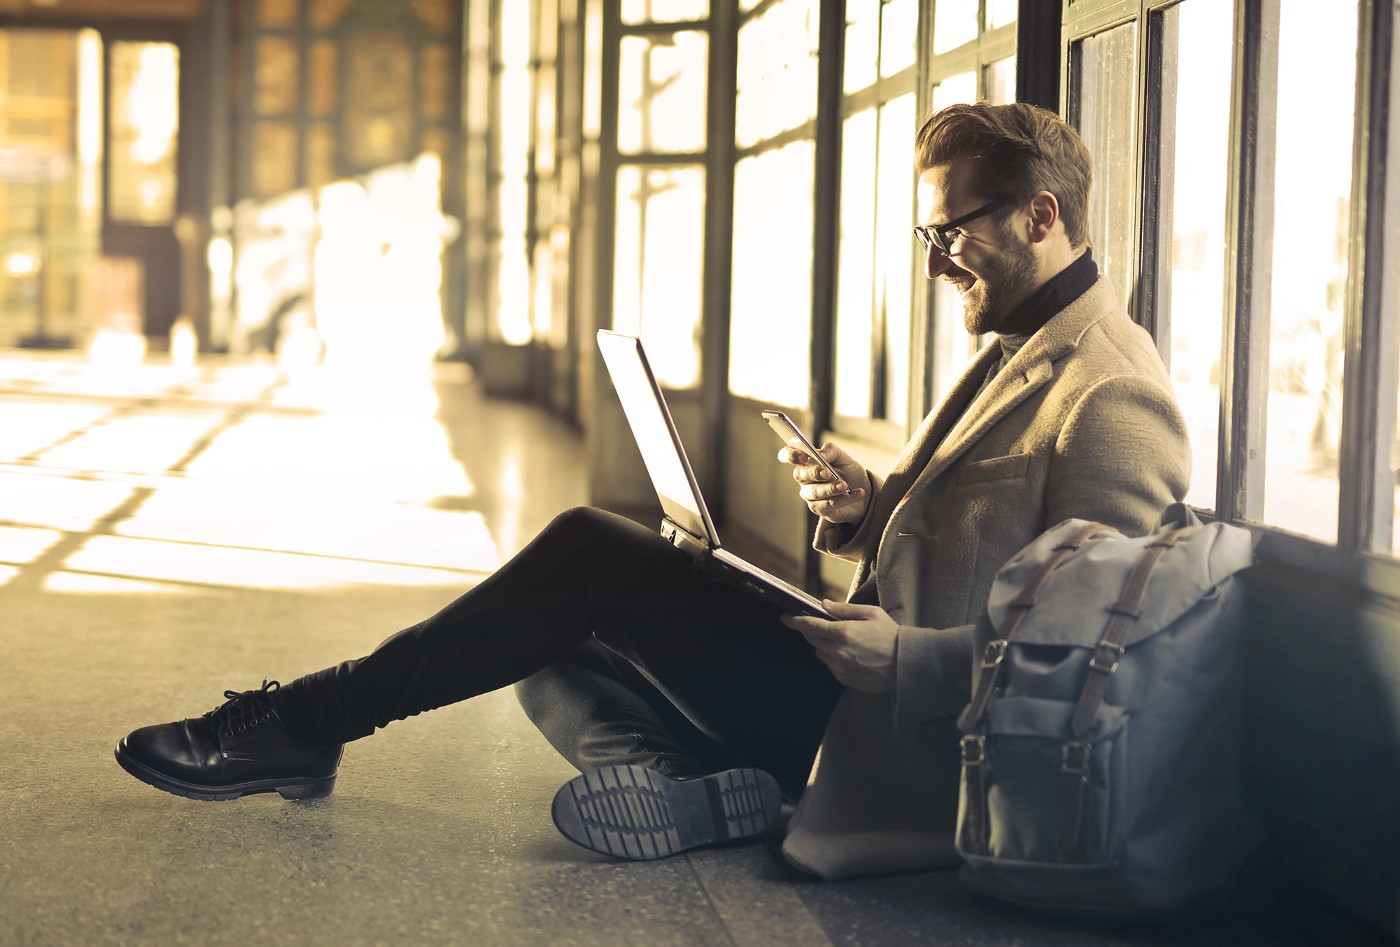 Business traveller sitting on ground with laptop